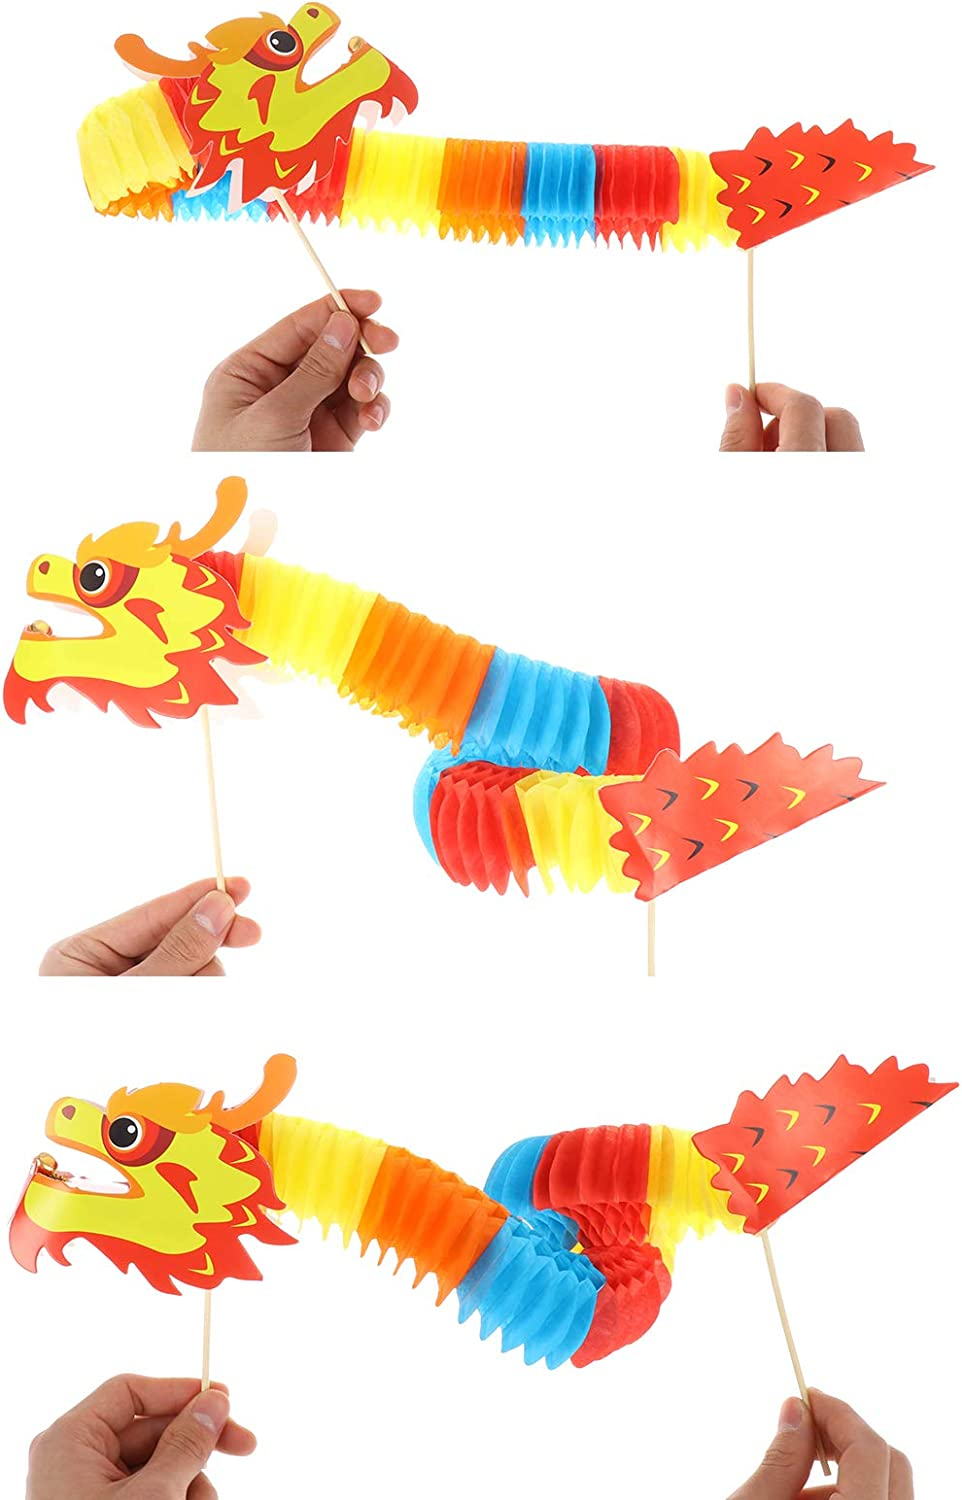 Chinese New Year Paper Dragon Pick Folded Tissue Dragon-4 Styles 3D Chinese Paper Dragon Hanging Garland Crafts Traditional Handheld Red Lantern Toy for Kids Toddlers Chinese New Year Decorations 2021